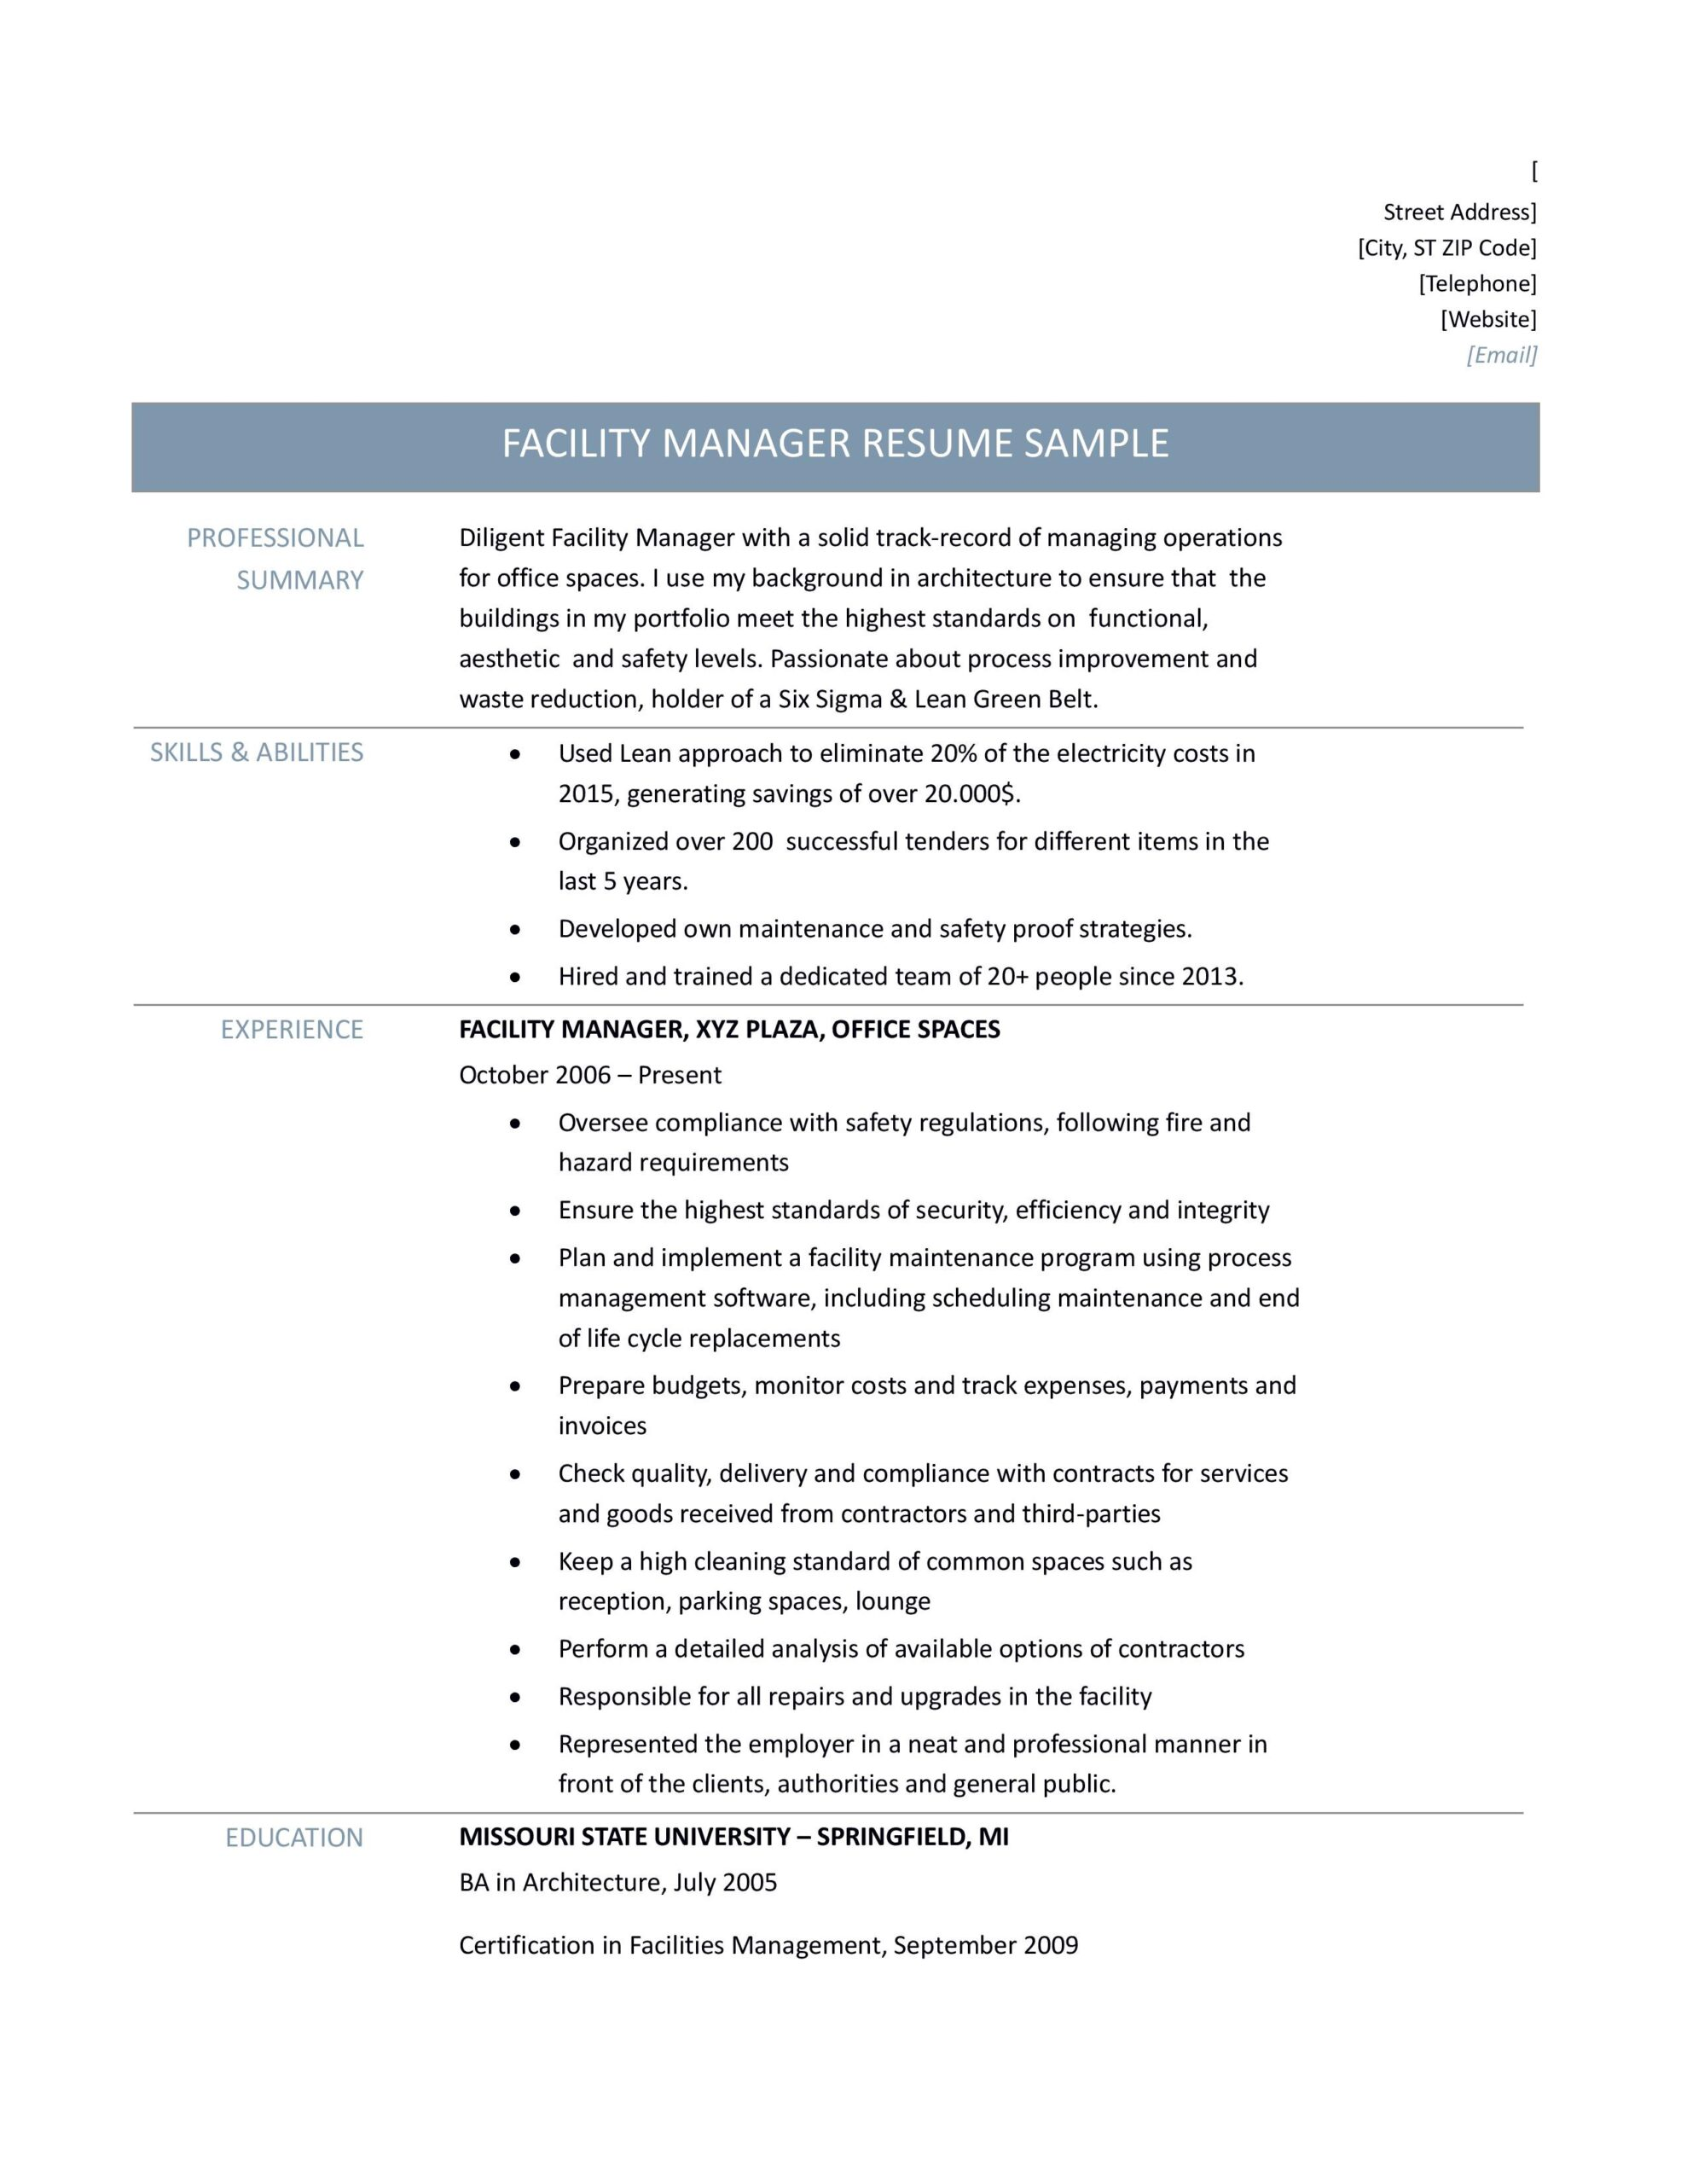 facilities manager resume samples tips and templates by builders medium facility Resume Facility Operations Manager Resume Sample